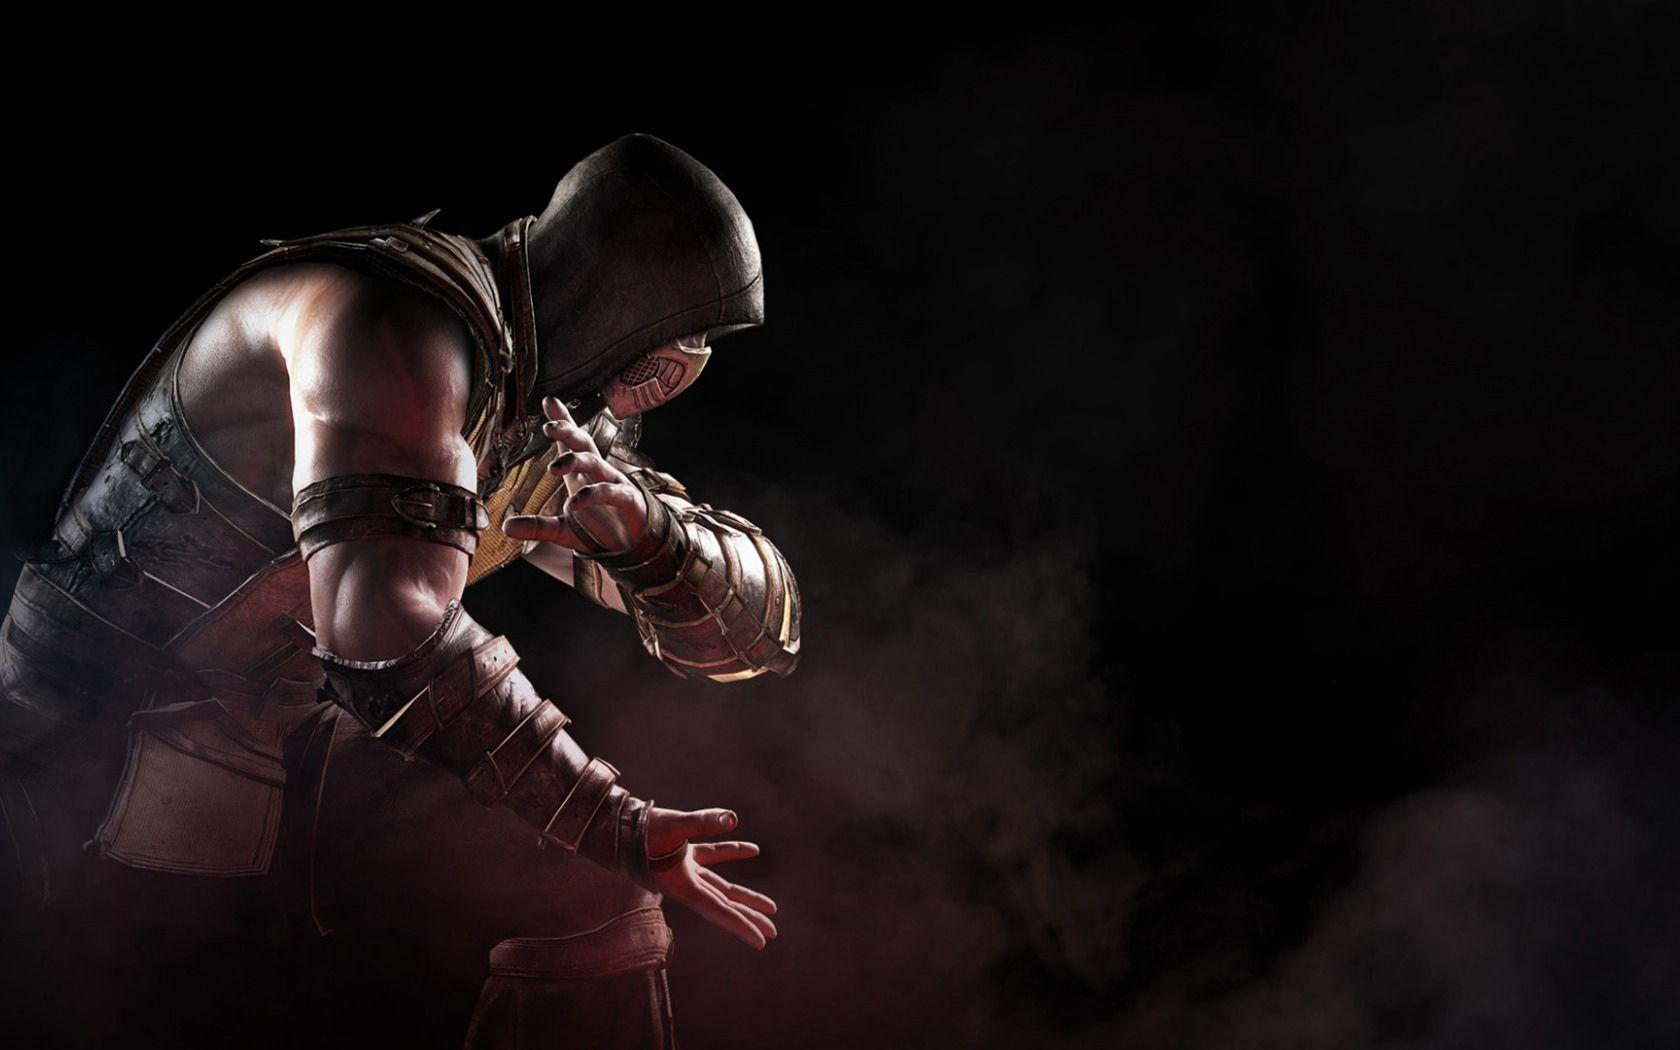 Download wallpapers 1680x1050 mortal kombat x, scorpion, soldier, art